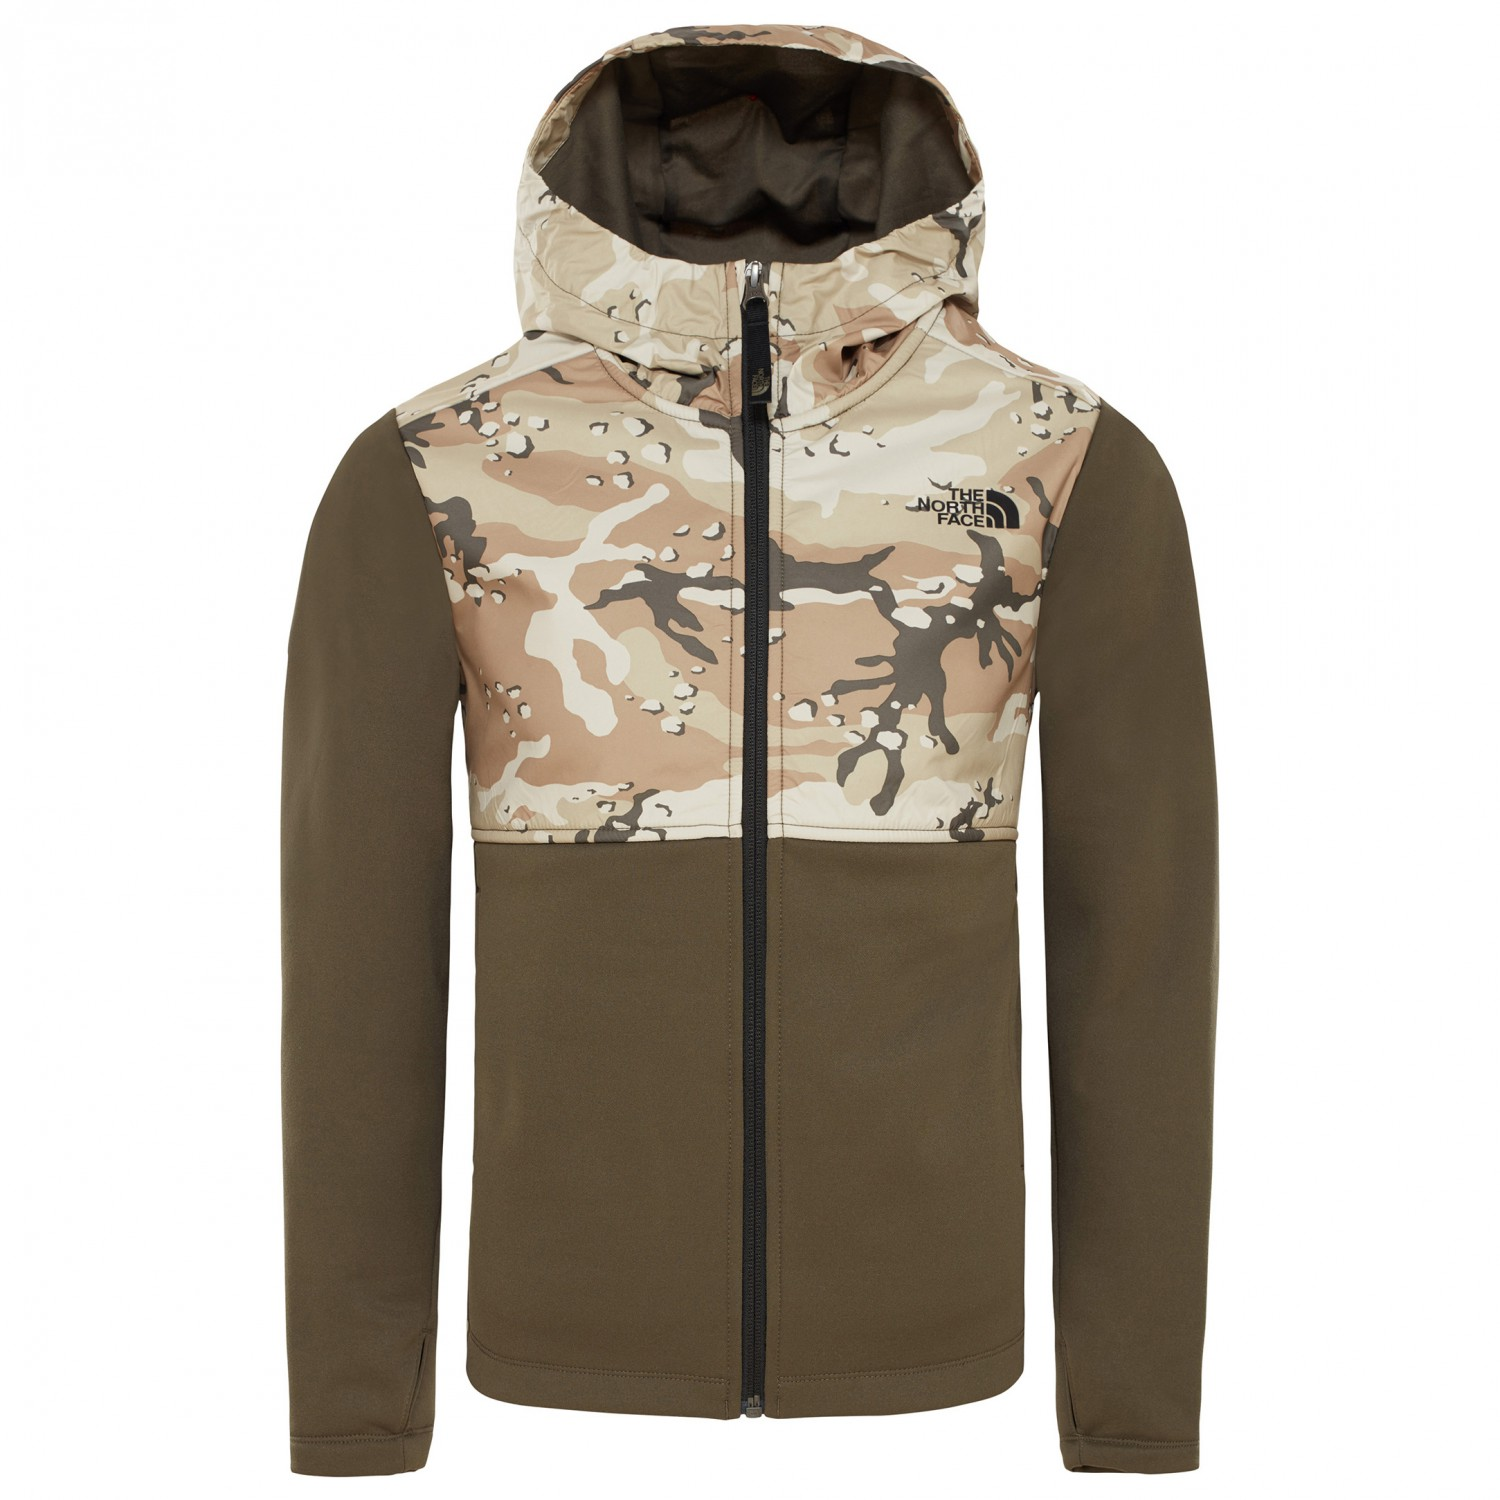 597c7df81 The North Face - Boy's Kickin it Hoodie - Fleece jacket - New Taupe Green |  S